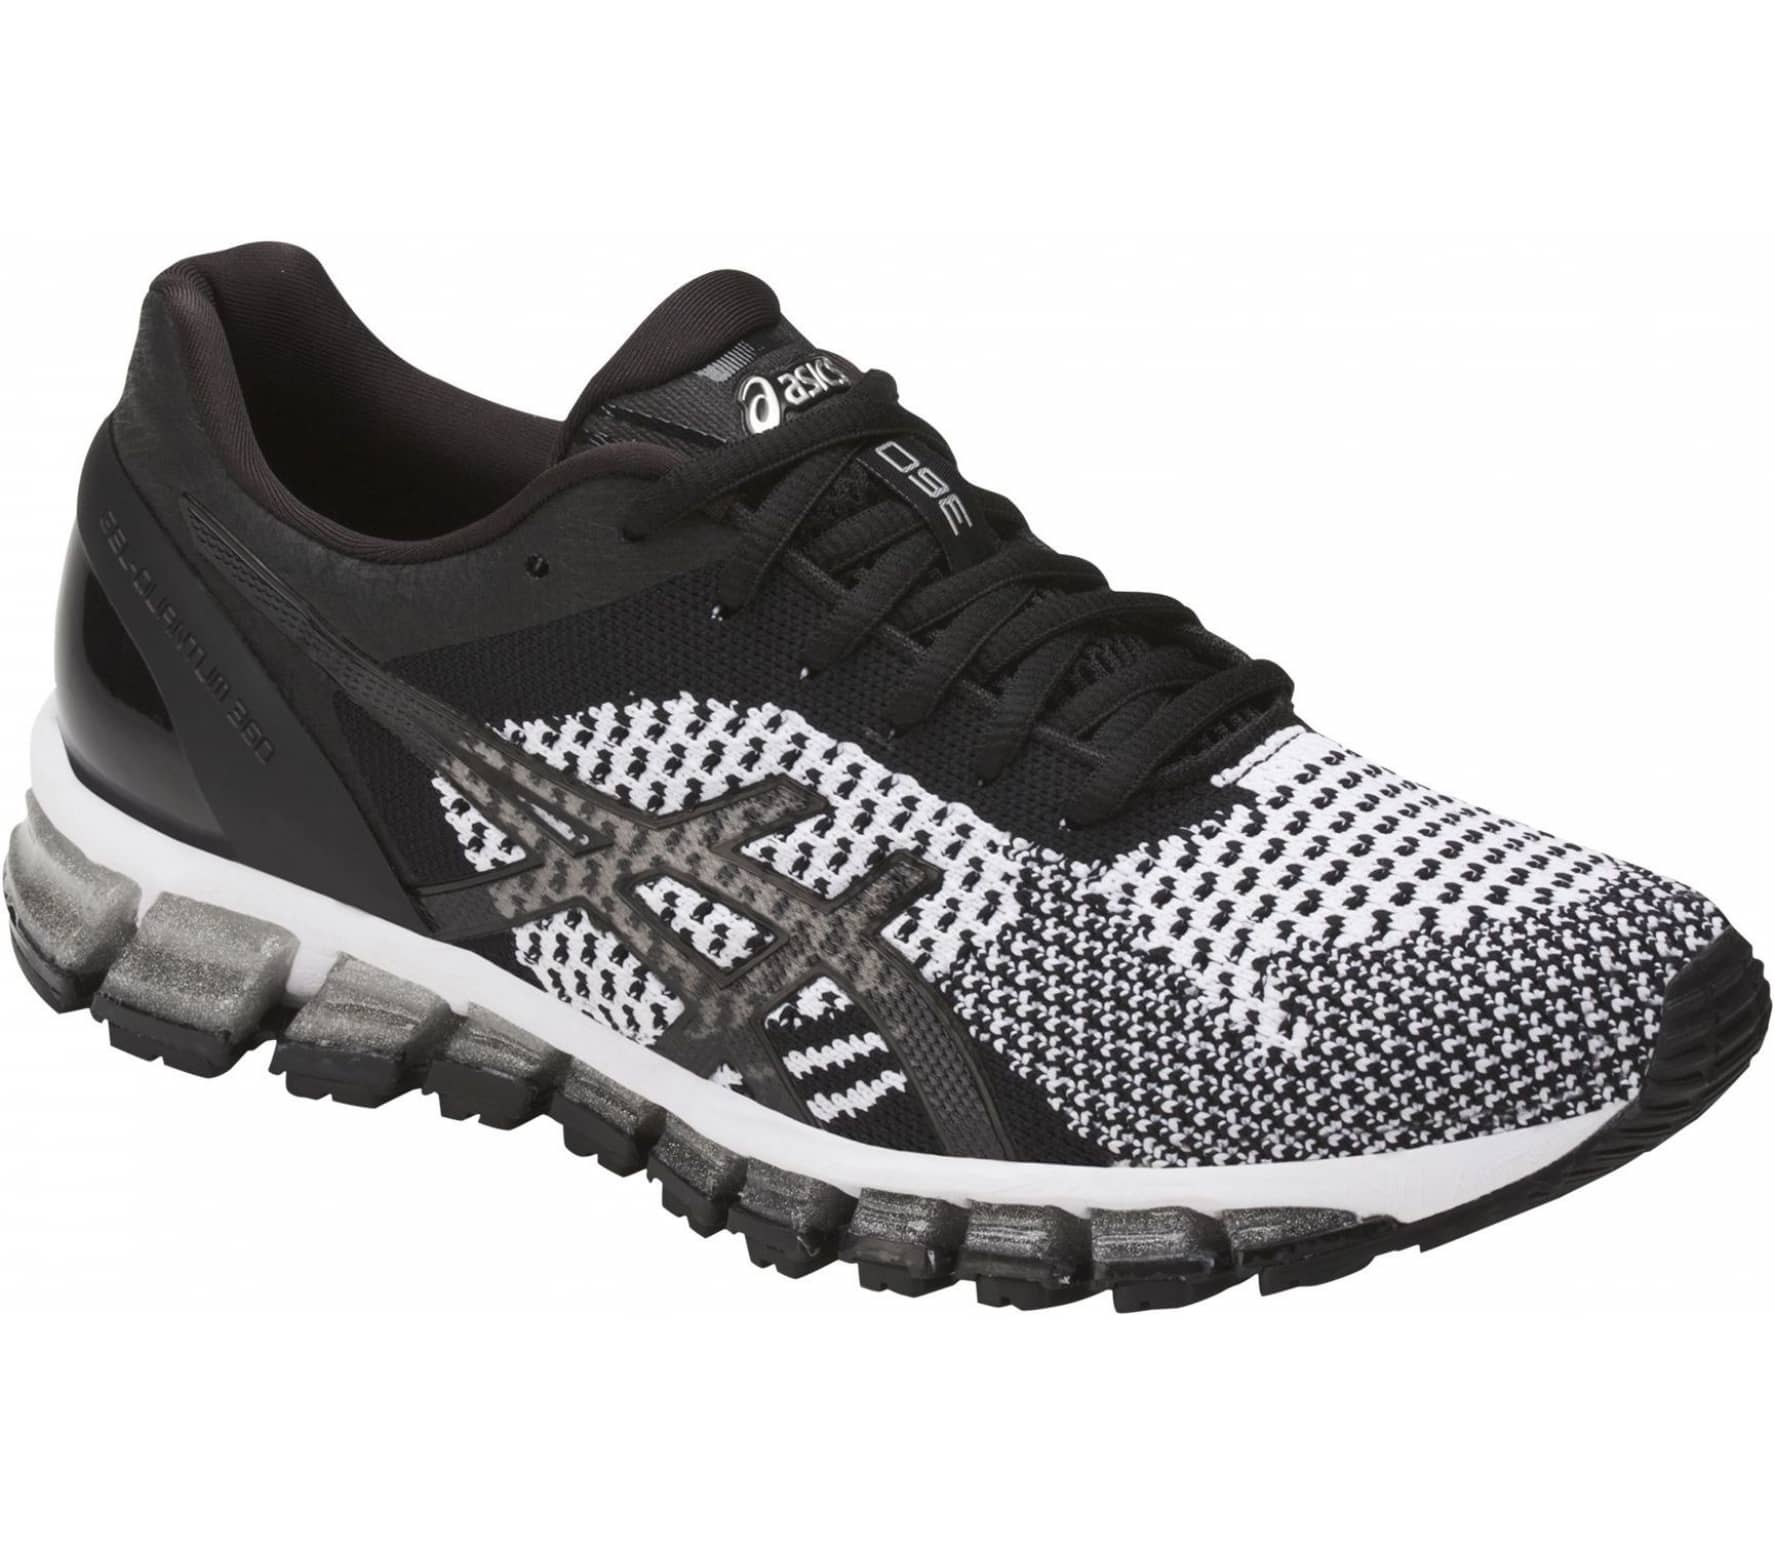 Asics - Gel-Quantum 360 Knit women s running shoes (black white ... d6df1b3b4d